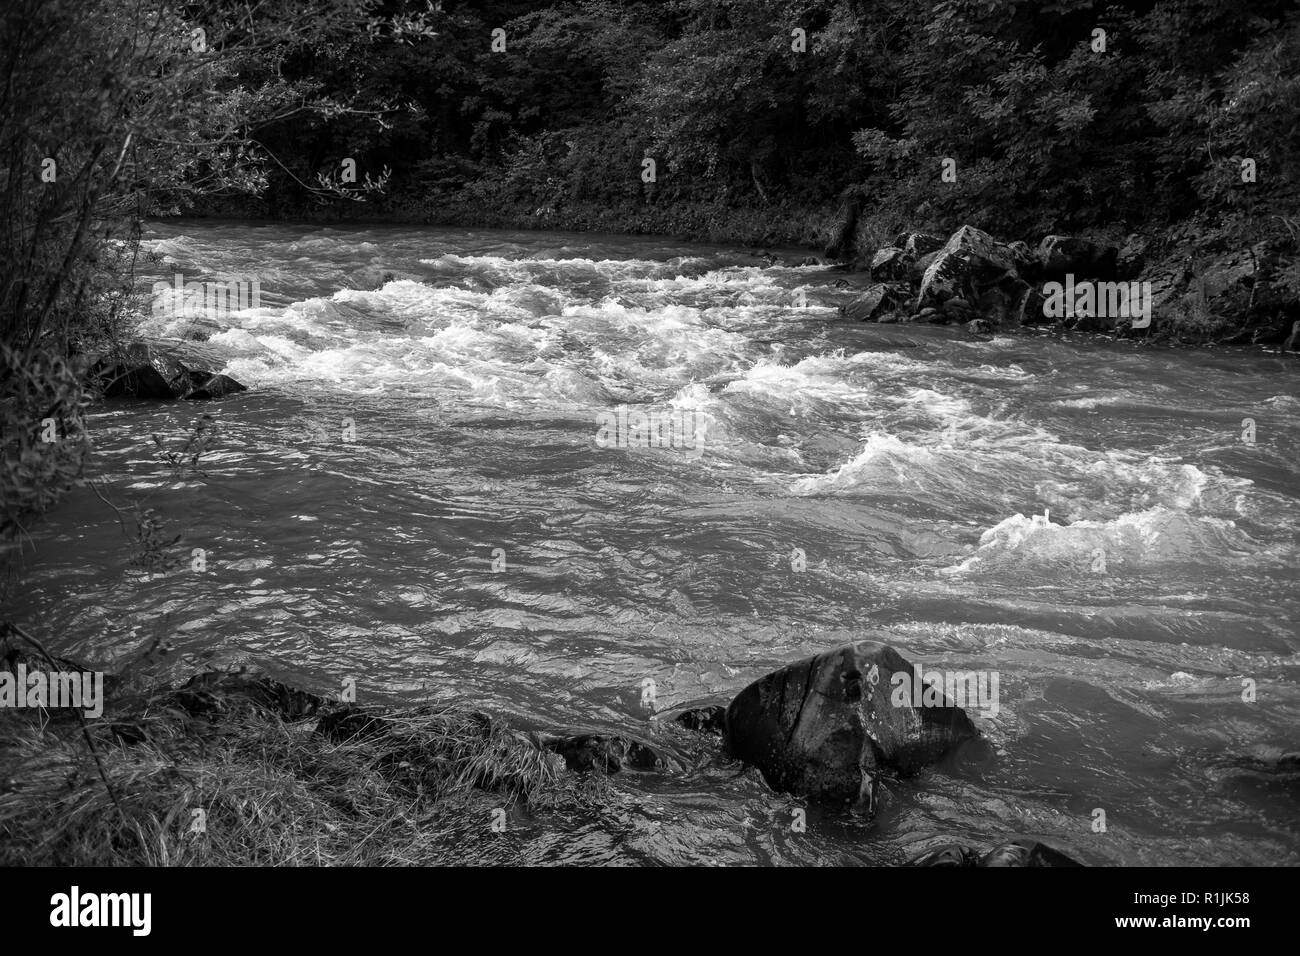 River flows, selective focus, black and white image taken at the Vidima river in Northern Bulgaria Stock Photo